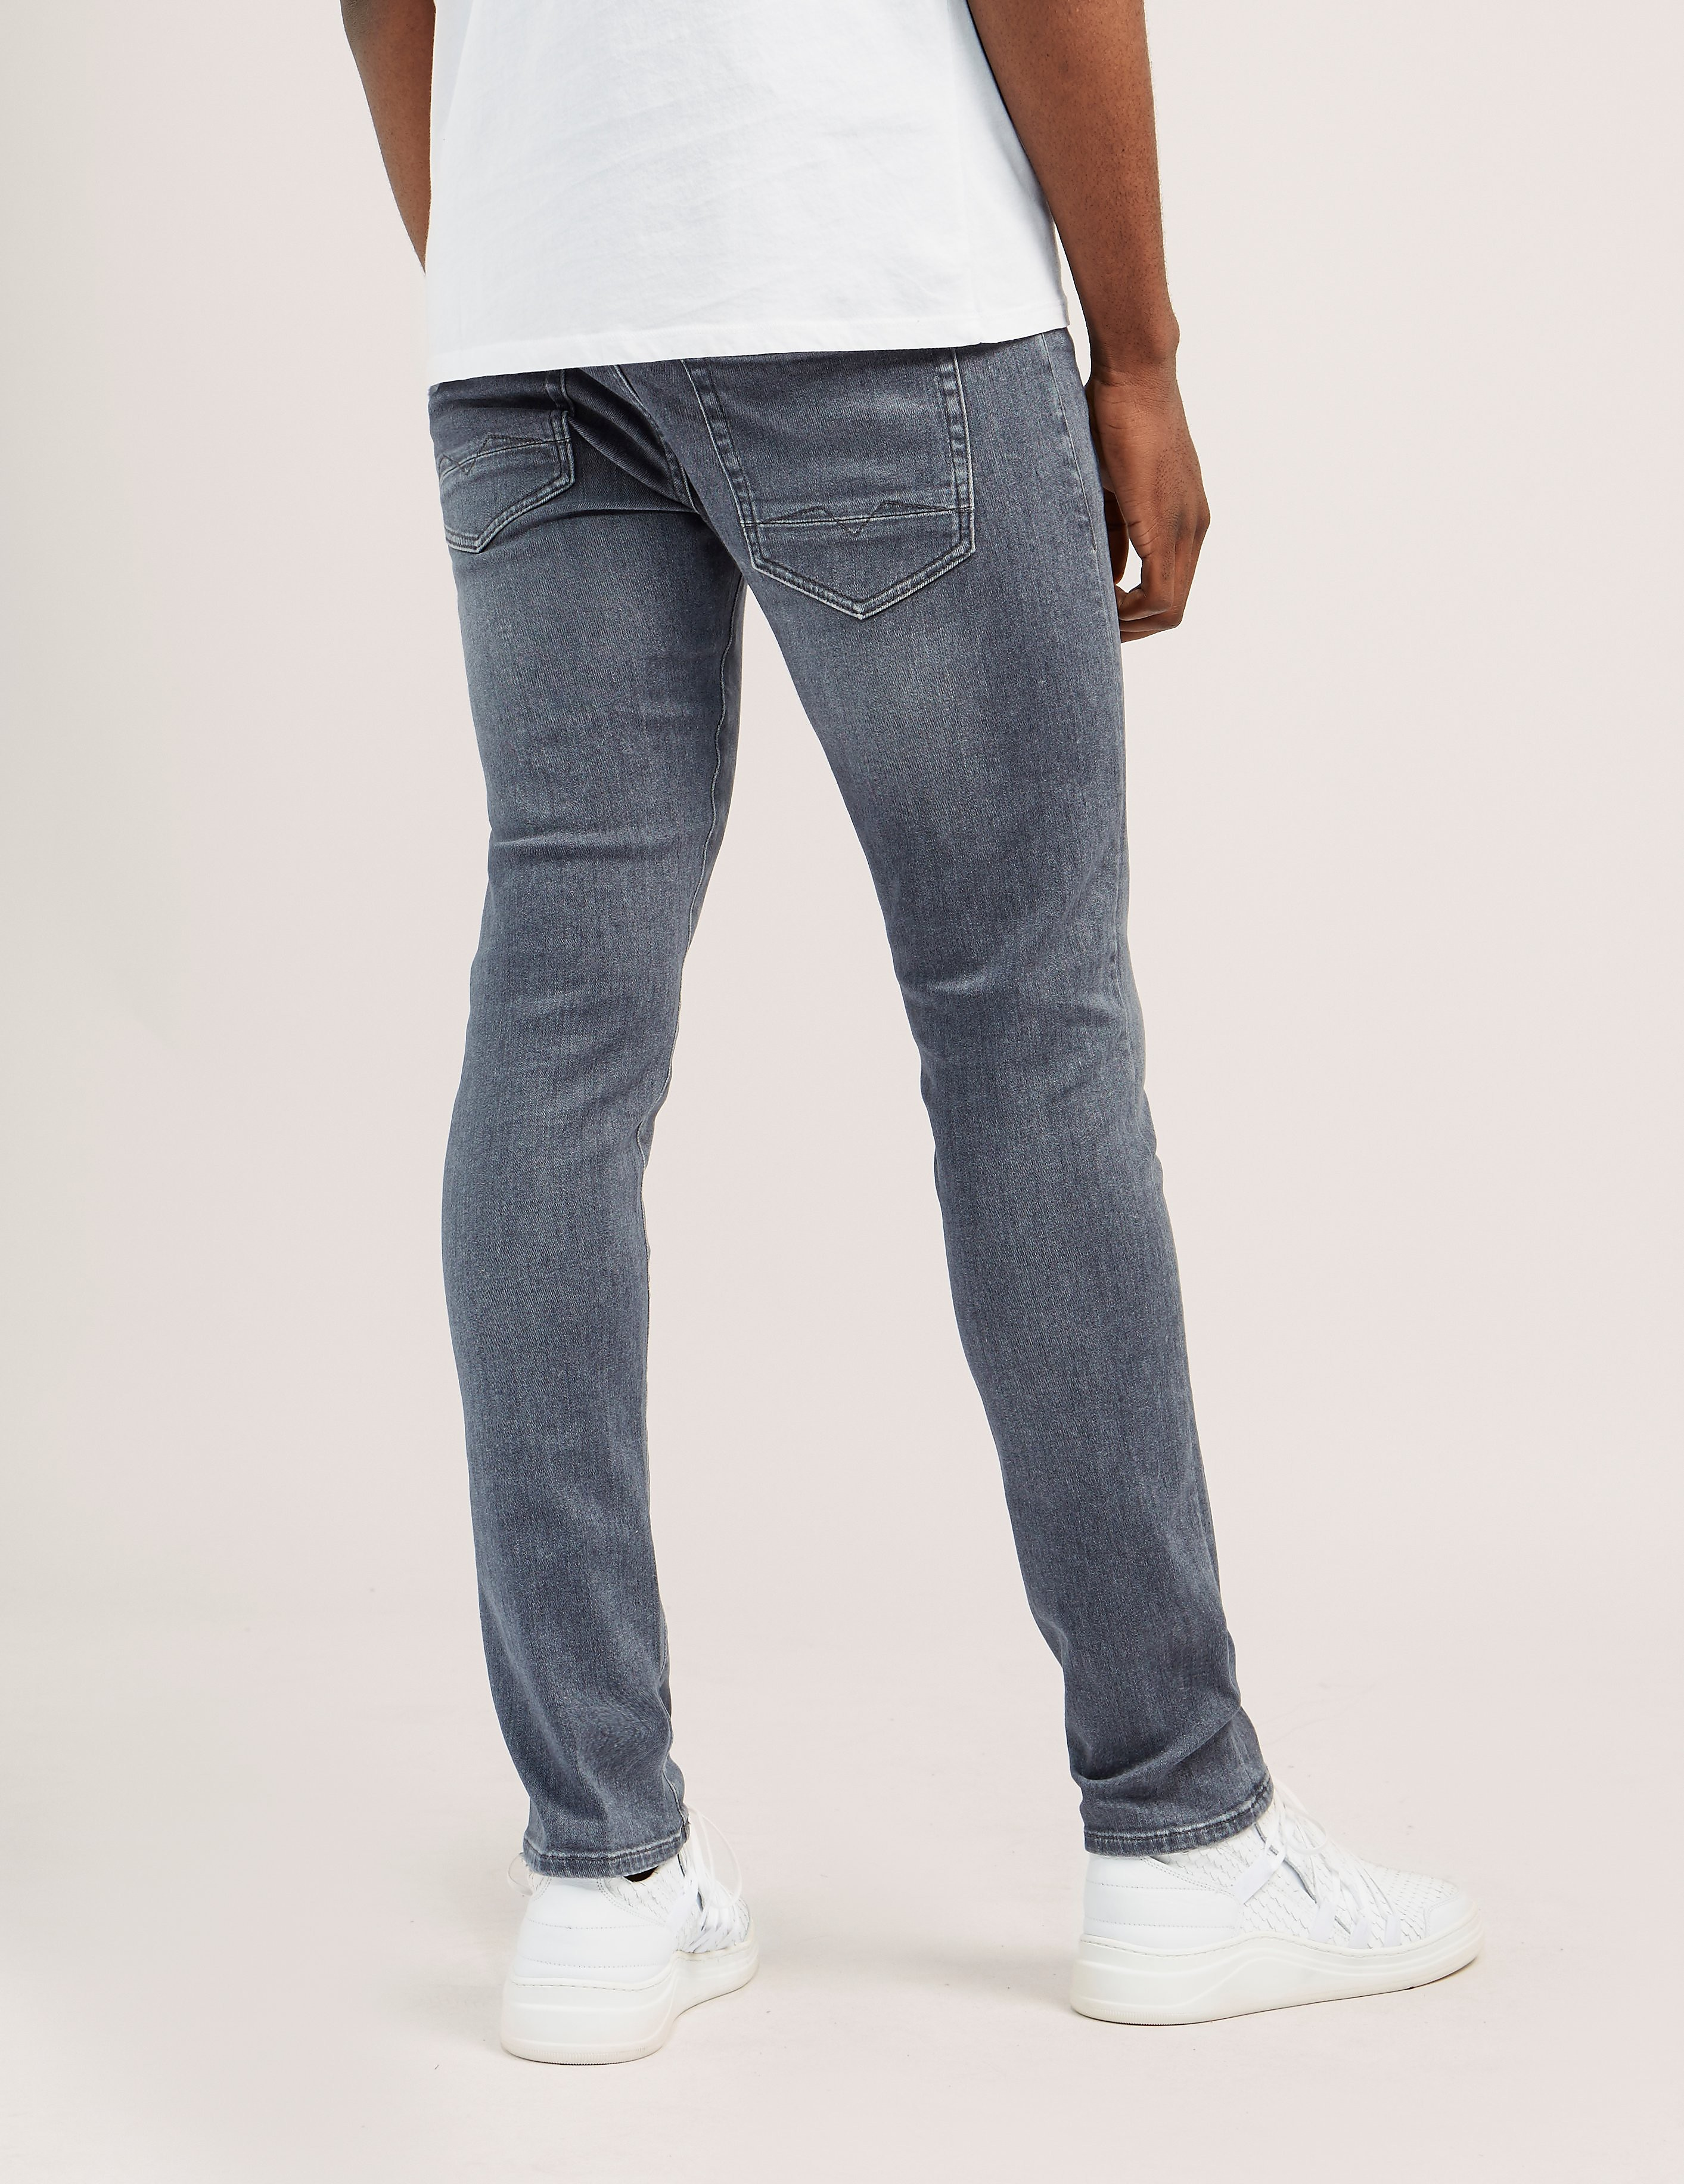 BOSS Orange 72 Skinny Jeans